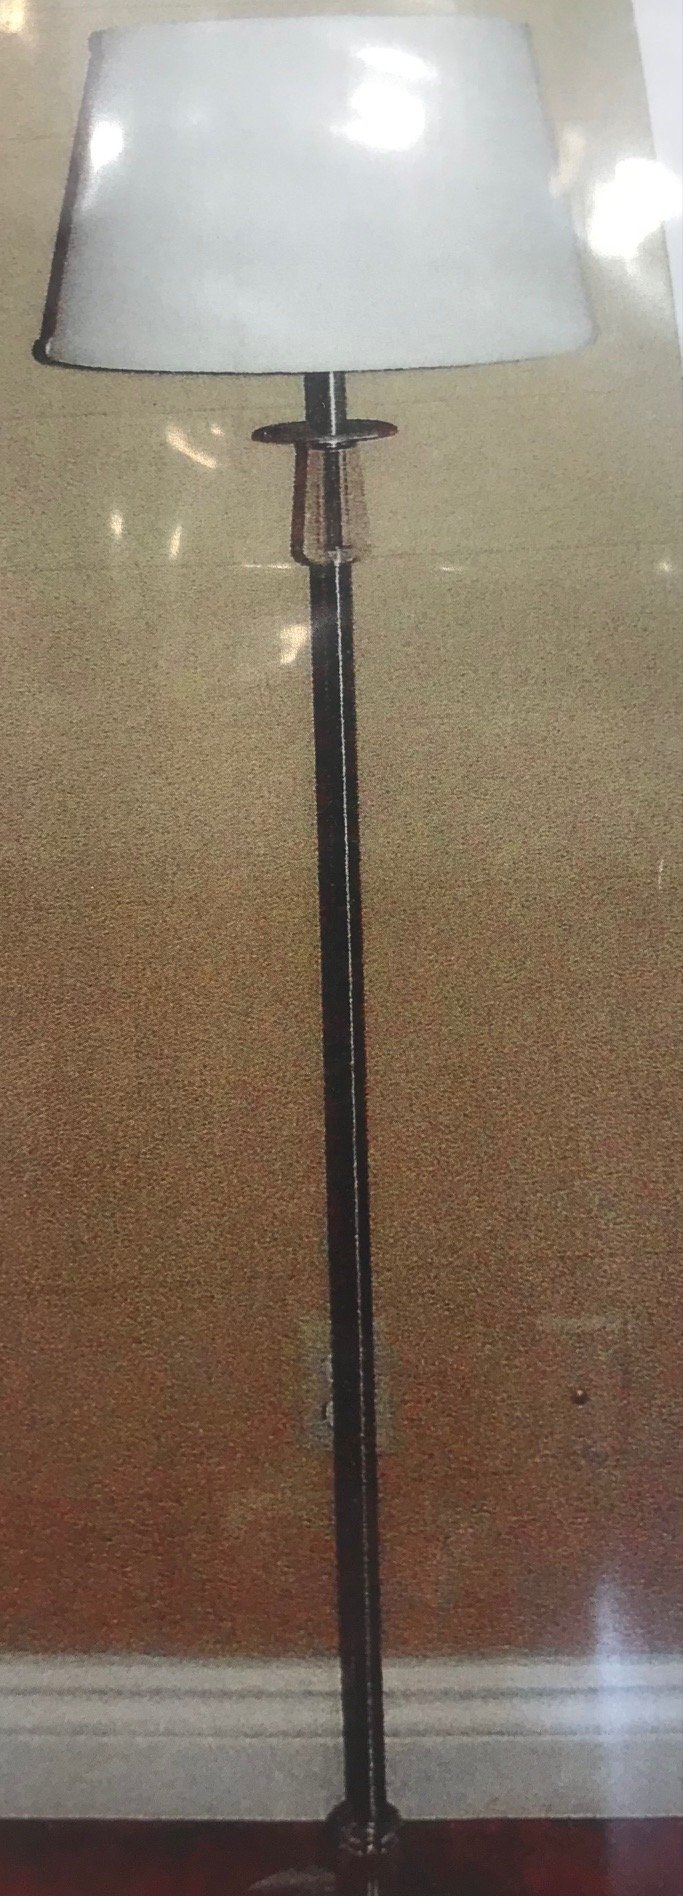 256 Floor Lamp Made in Canada Available in Antique Brass or Brushed Chrome Regular Price $245.99 Sale Price $172.99